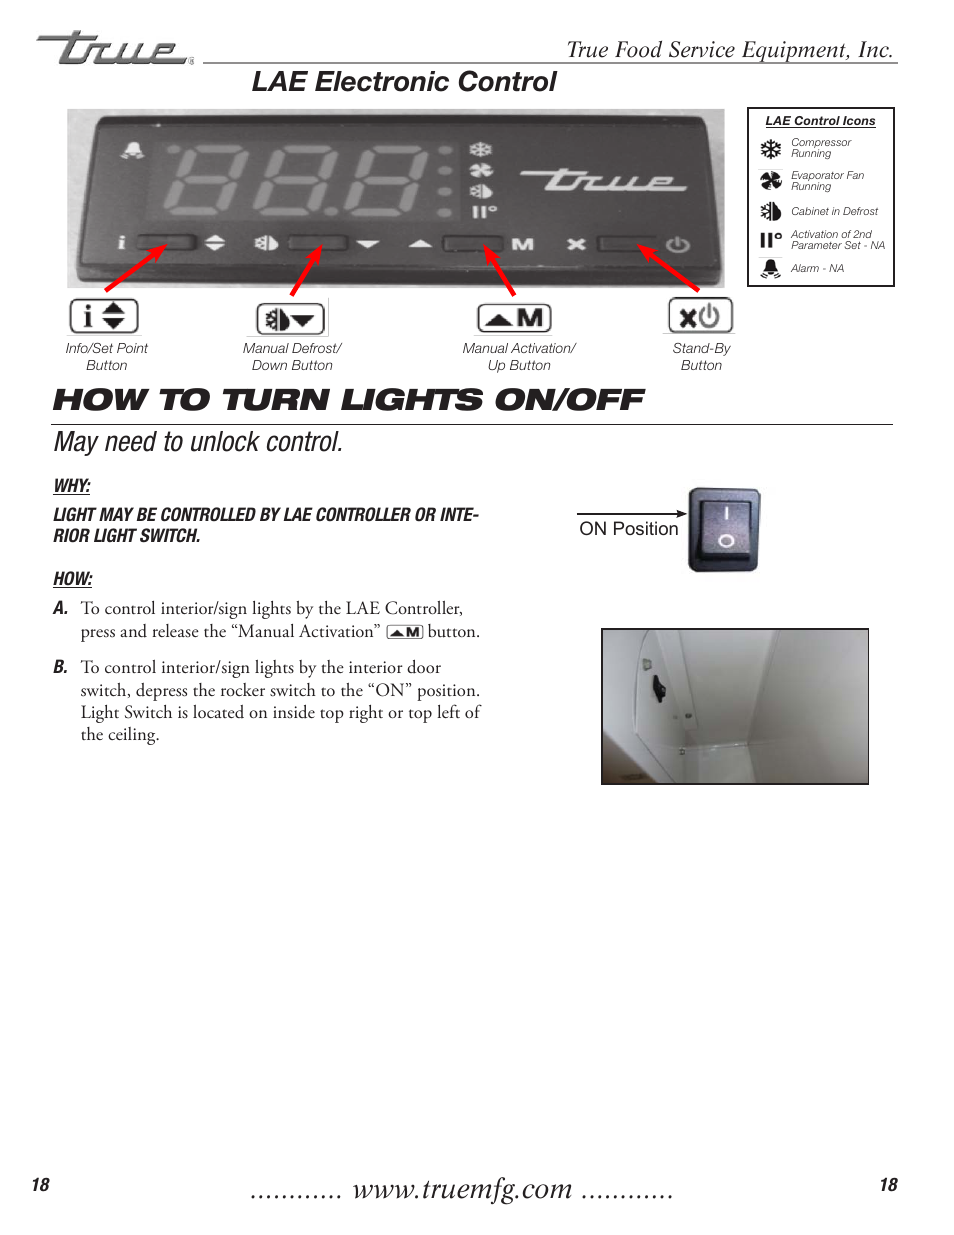 How to turn lights on/off, May need to unlock control  lae